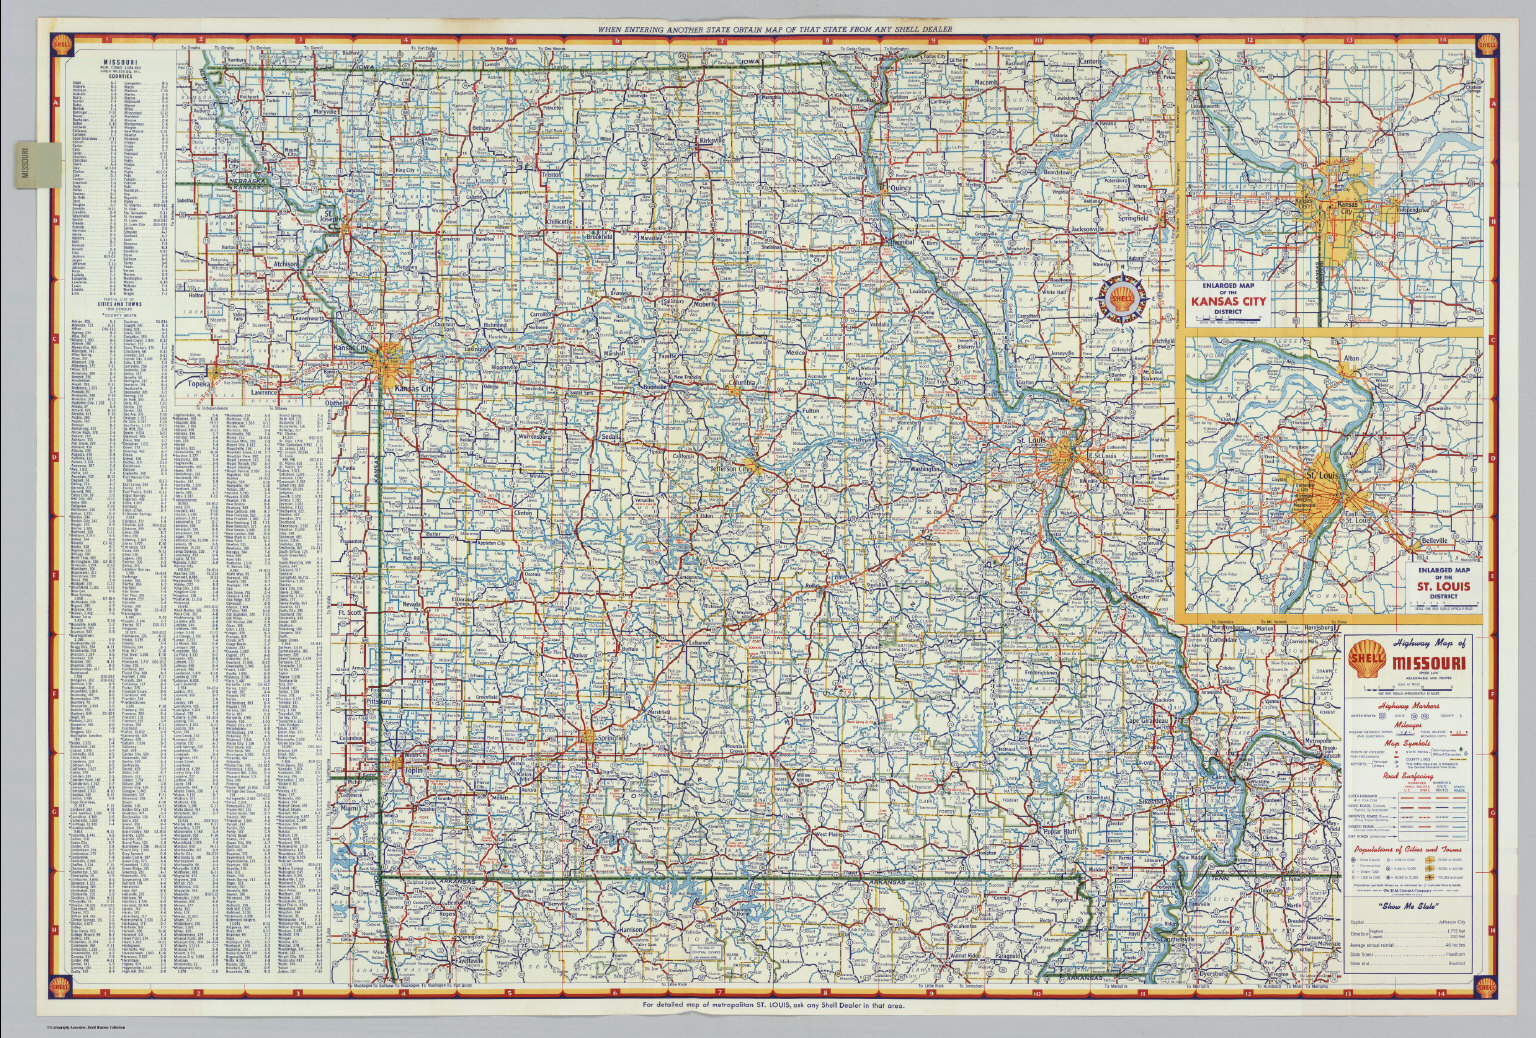 Shell Highway Map Of Missouri David Rumsey Historical Map - Highway map of missouri